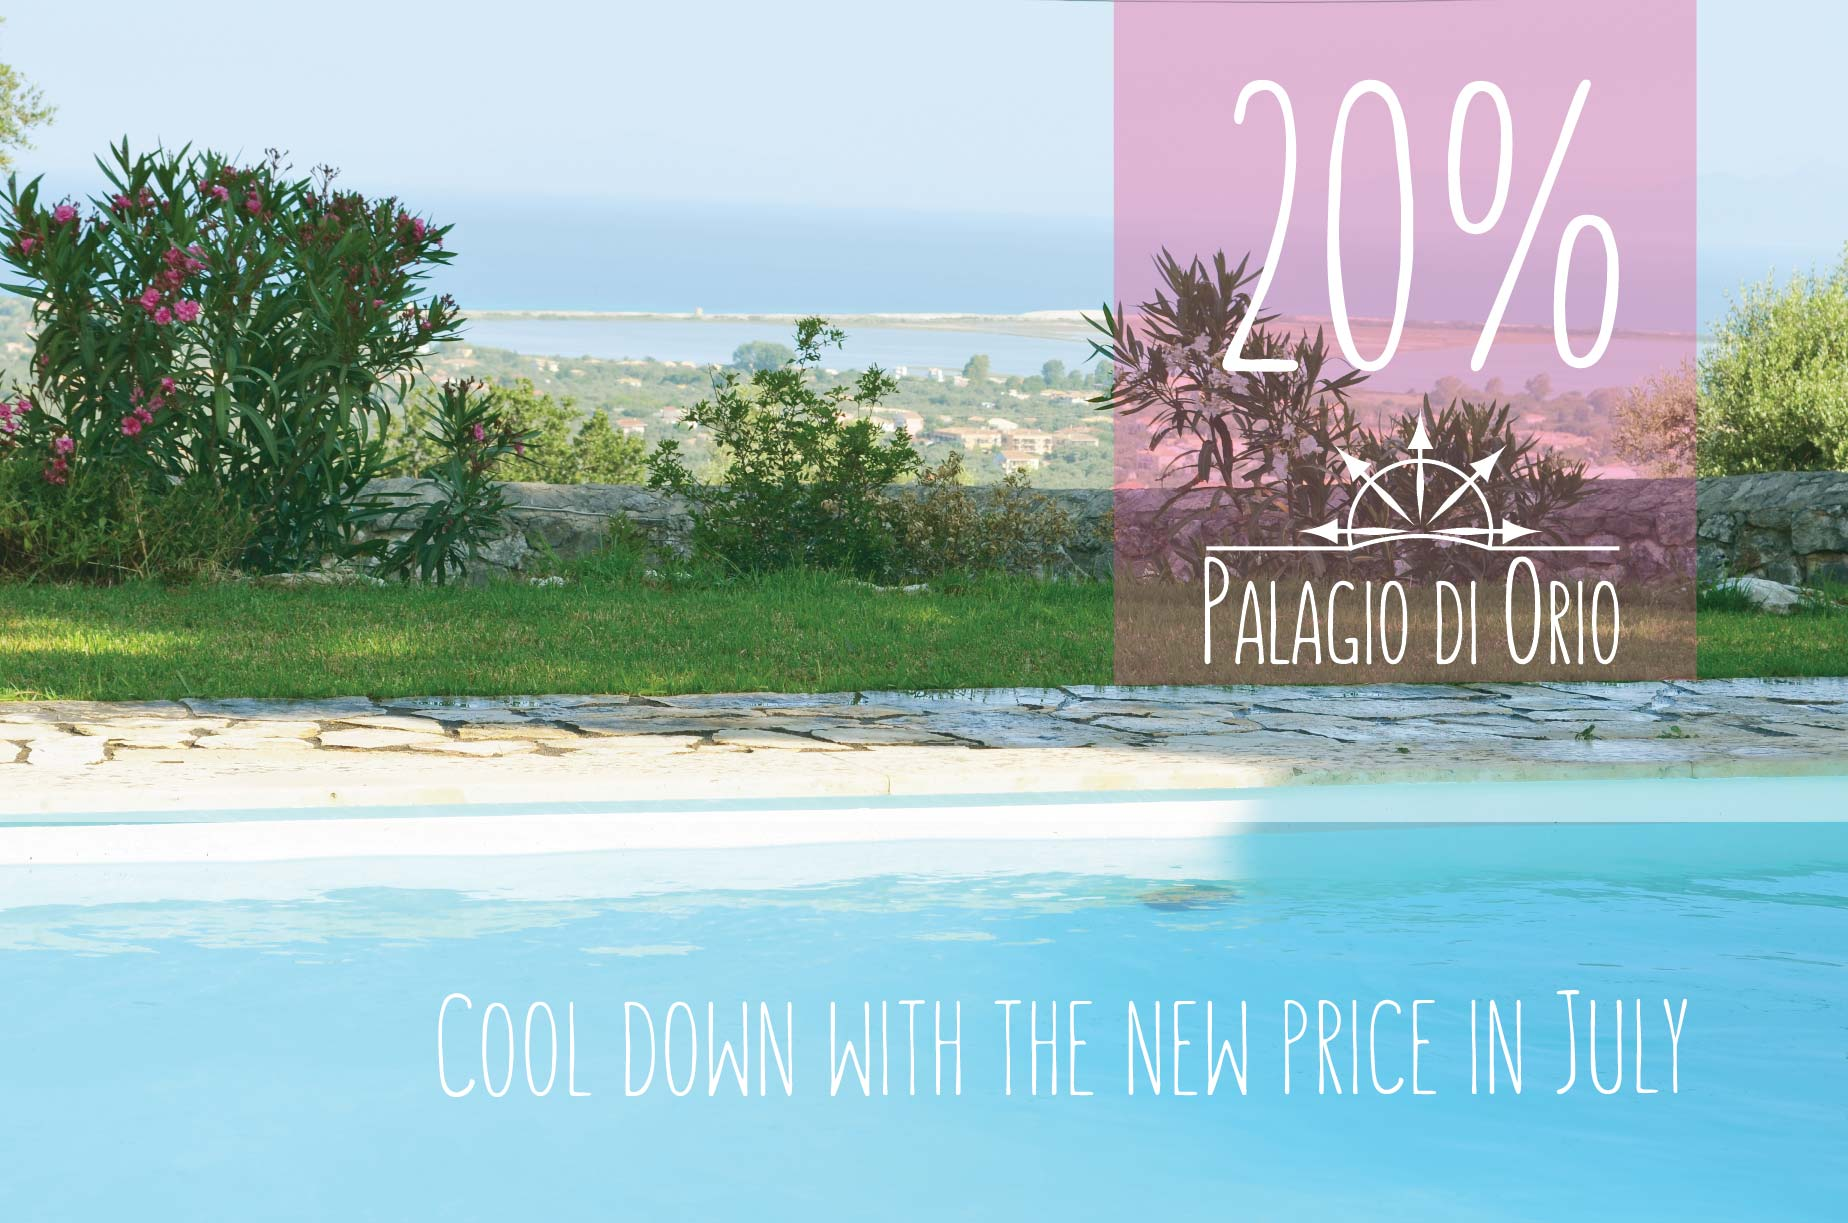 Cool down in hot July with special price